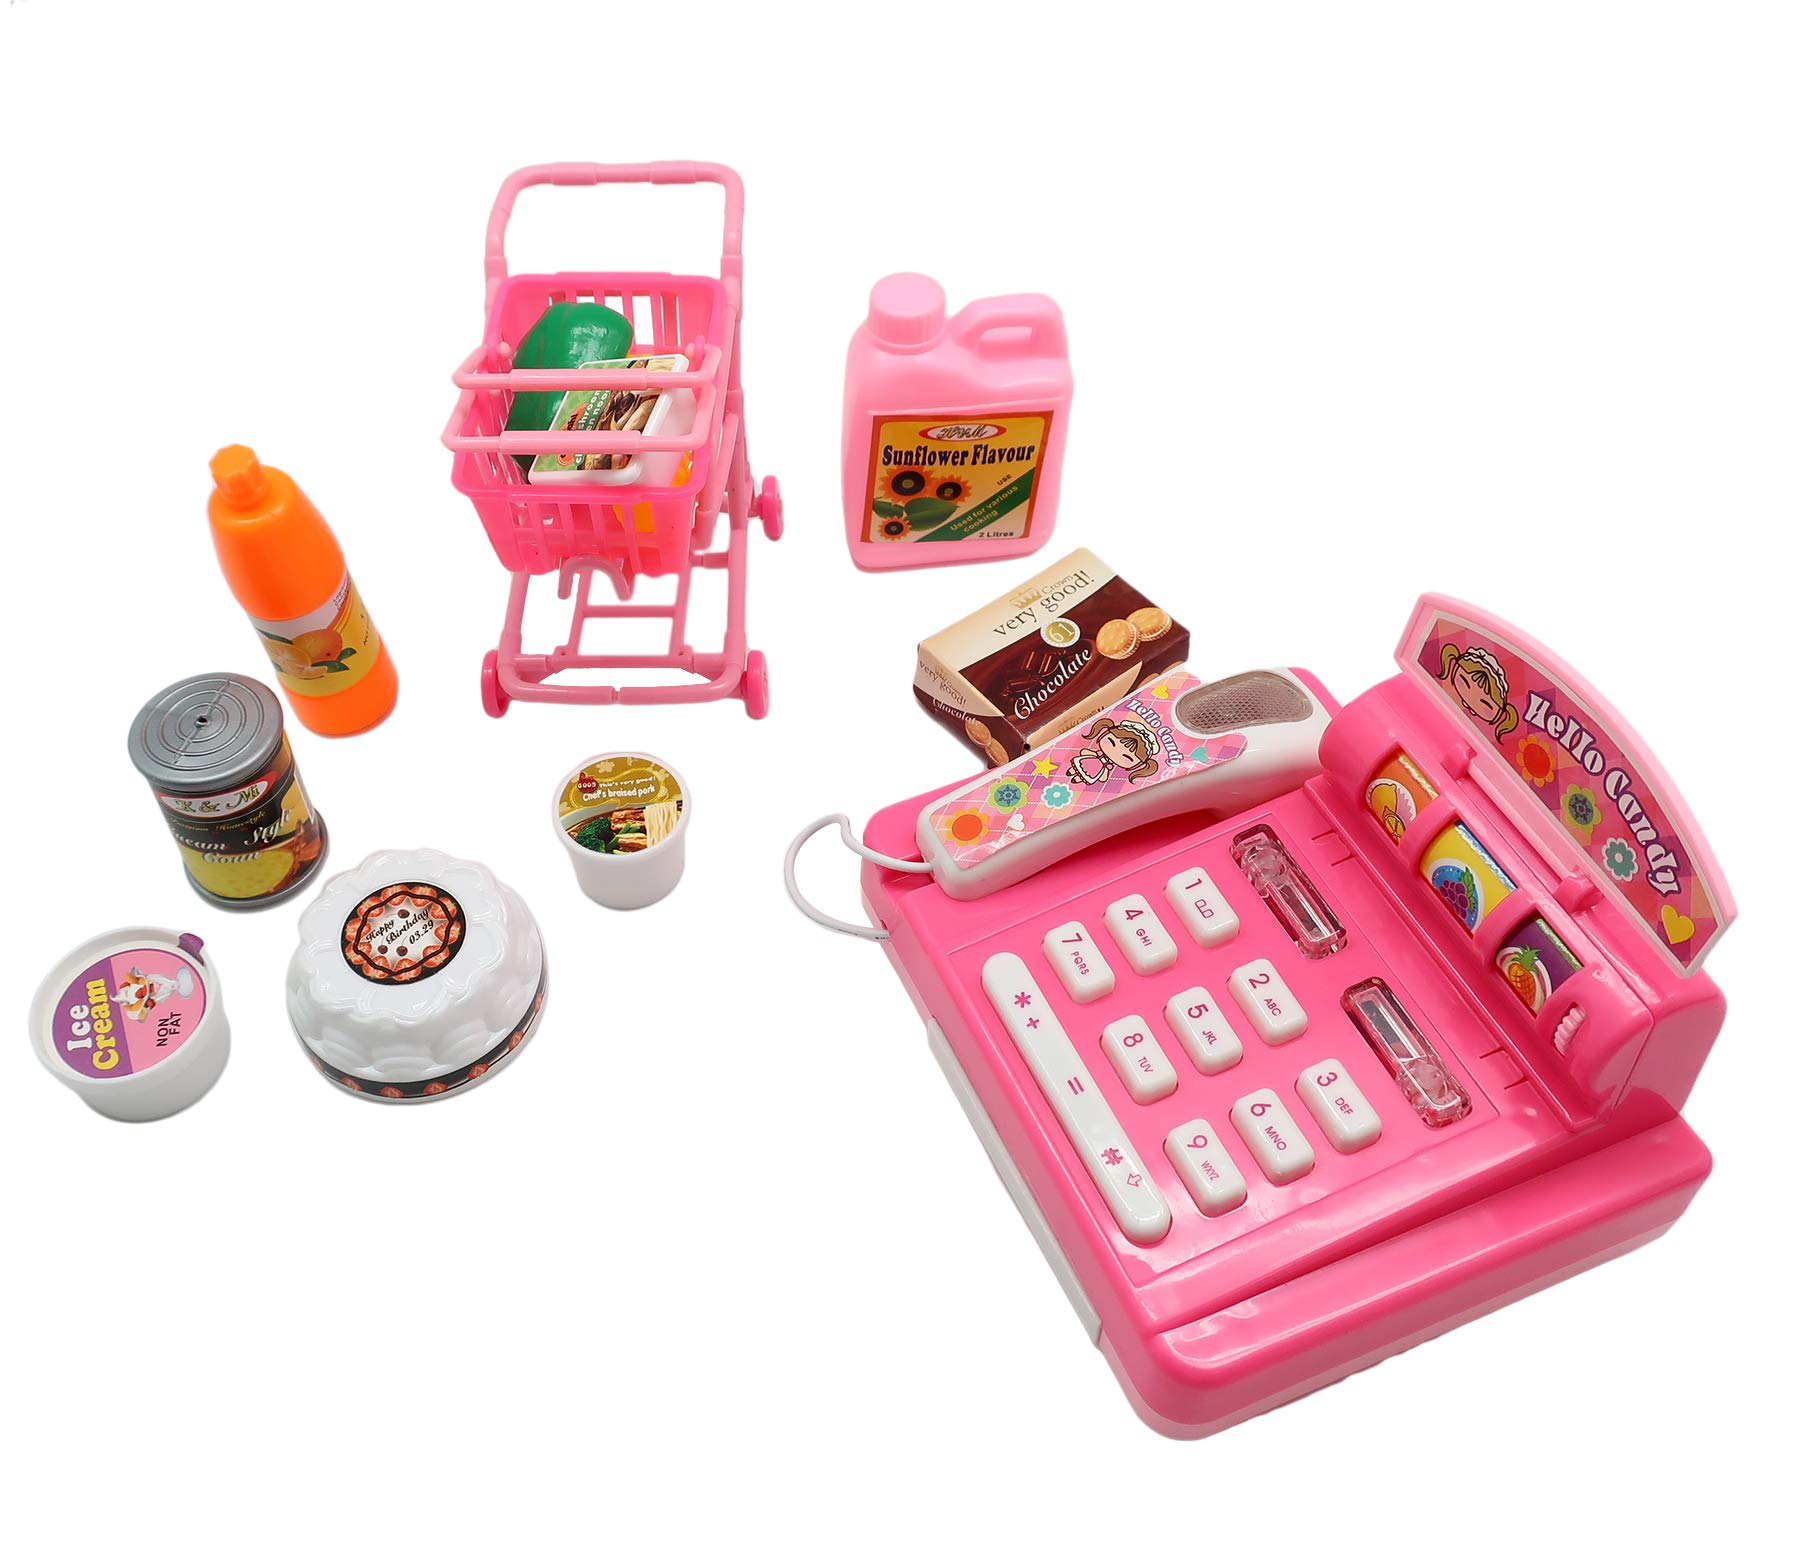 Mini Shopping Set for Kids - Ideal Pretend Play Kit for 3+- Features Realistic Miniature Grocery Store Items, Cash Register, Shopping Cart, Great Birthday by Forest & Twelfth Kids